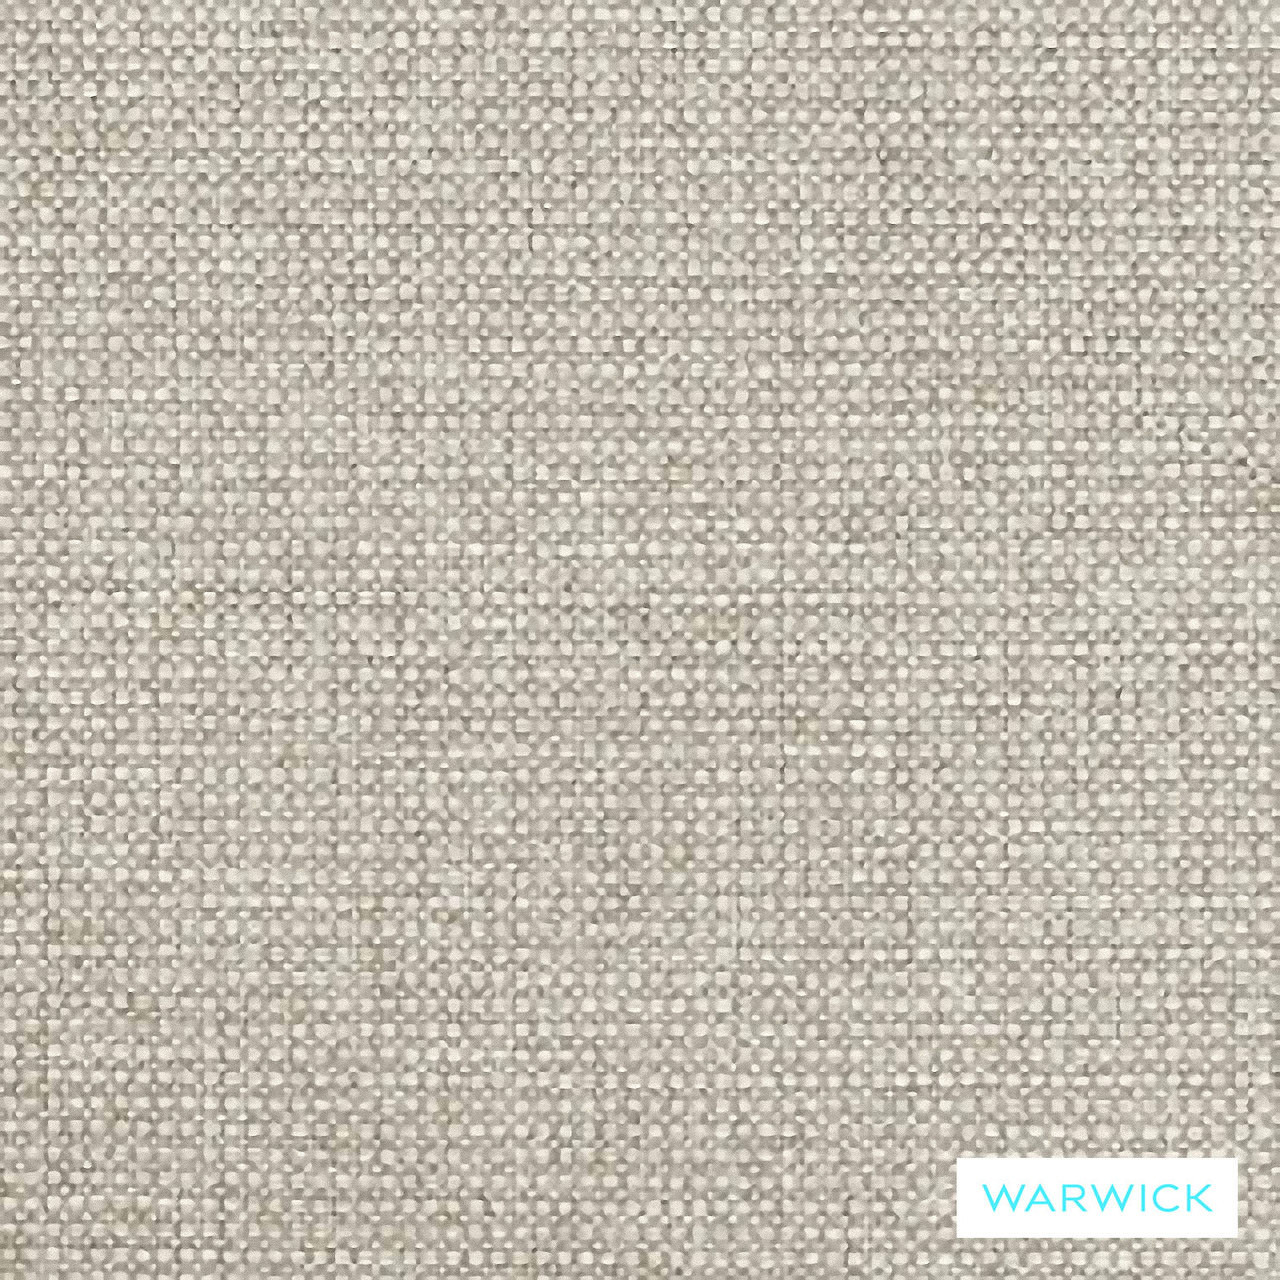 Warwick Lindeman Linen Halo Fabric For Upholstery